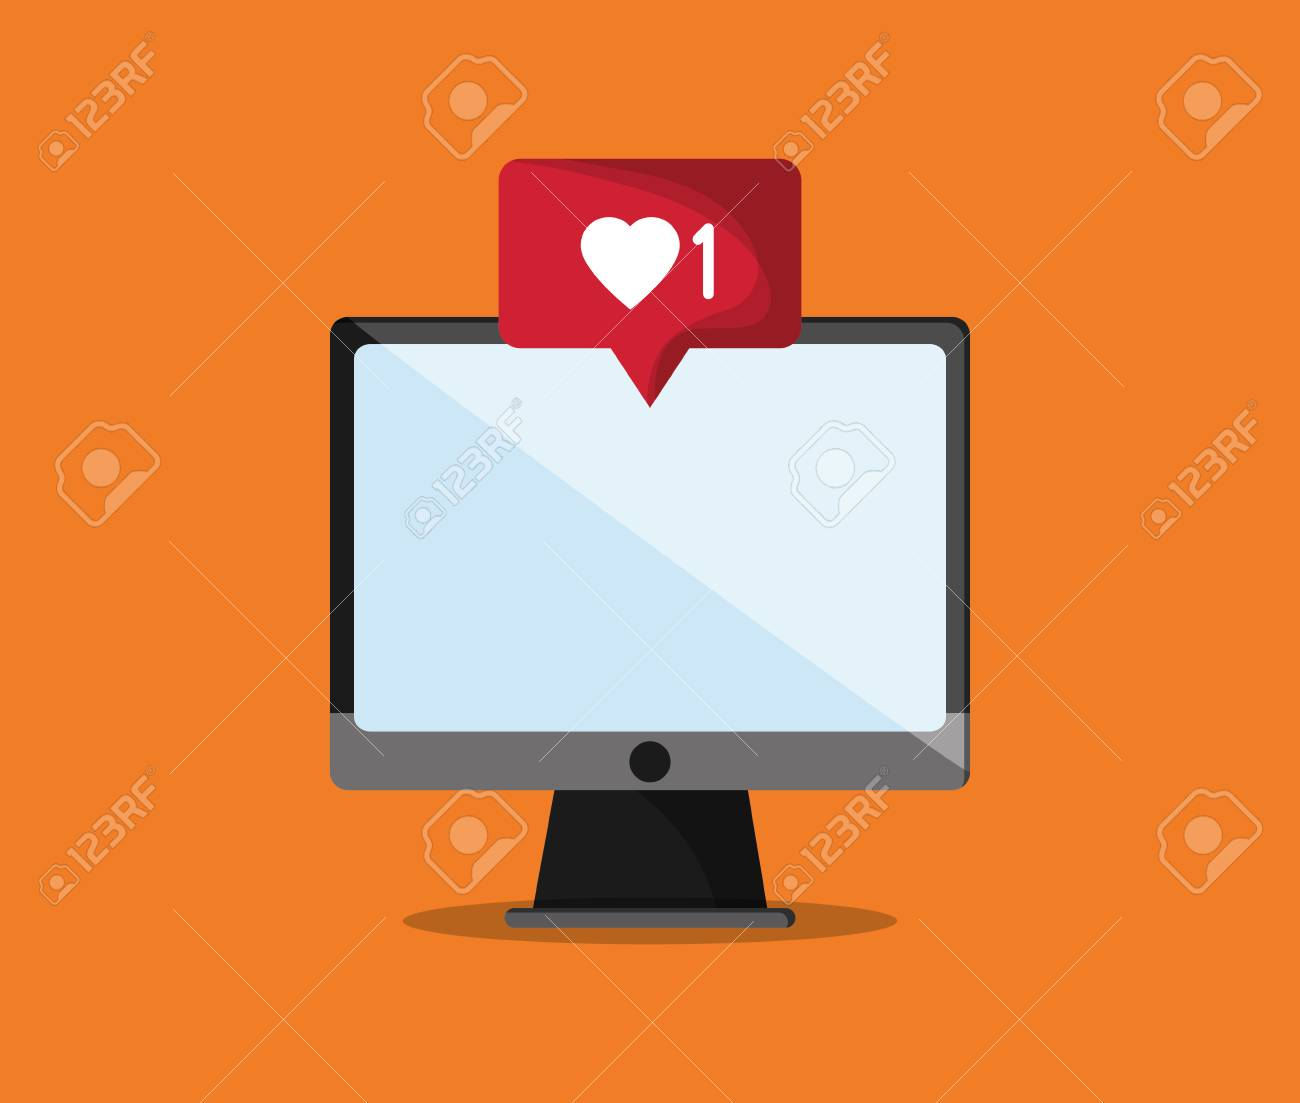 notification icon in communication related image vector illustration design - 64669077